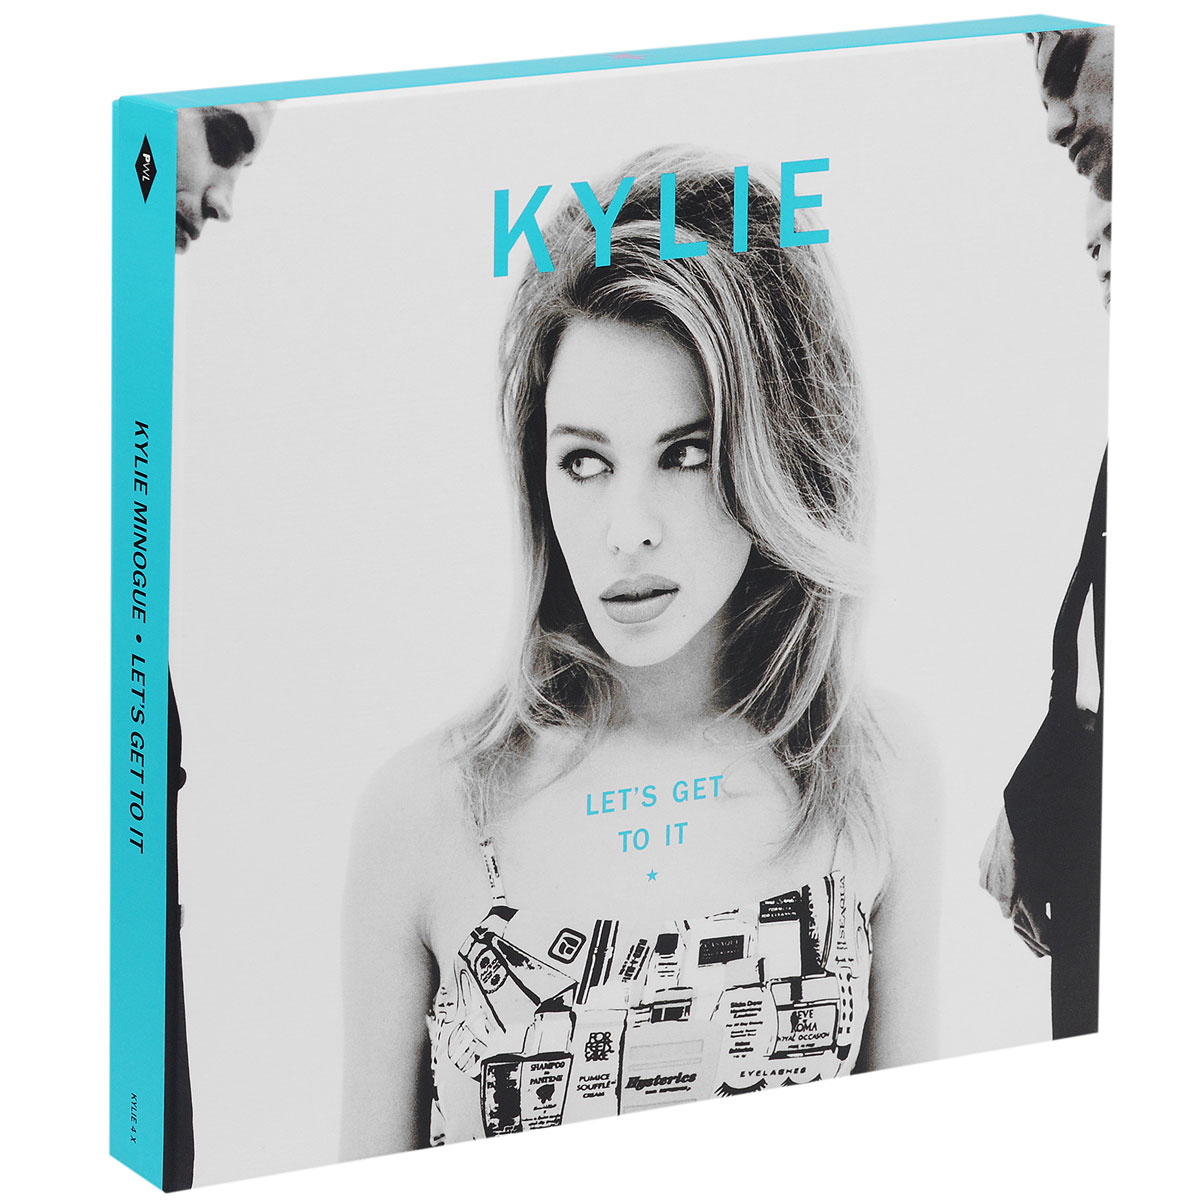 Кайли Миноуг Kylie Minogue. Let's Get To It (2 CD + DVD + LP) pantera pantera reinventing hell the best of pantera cd dvd